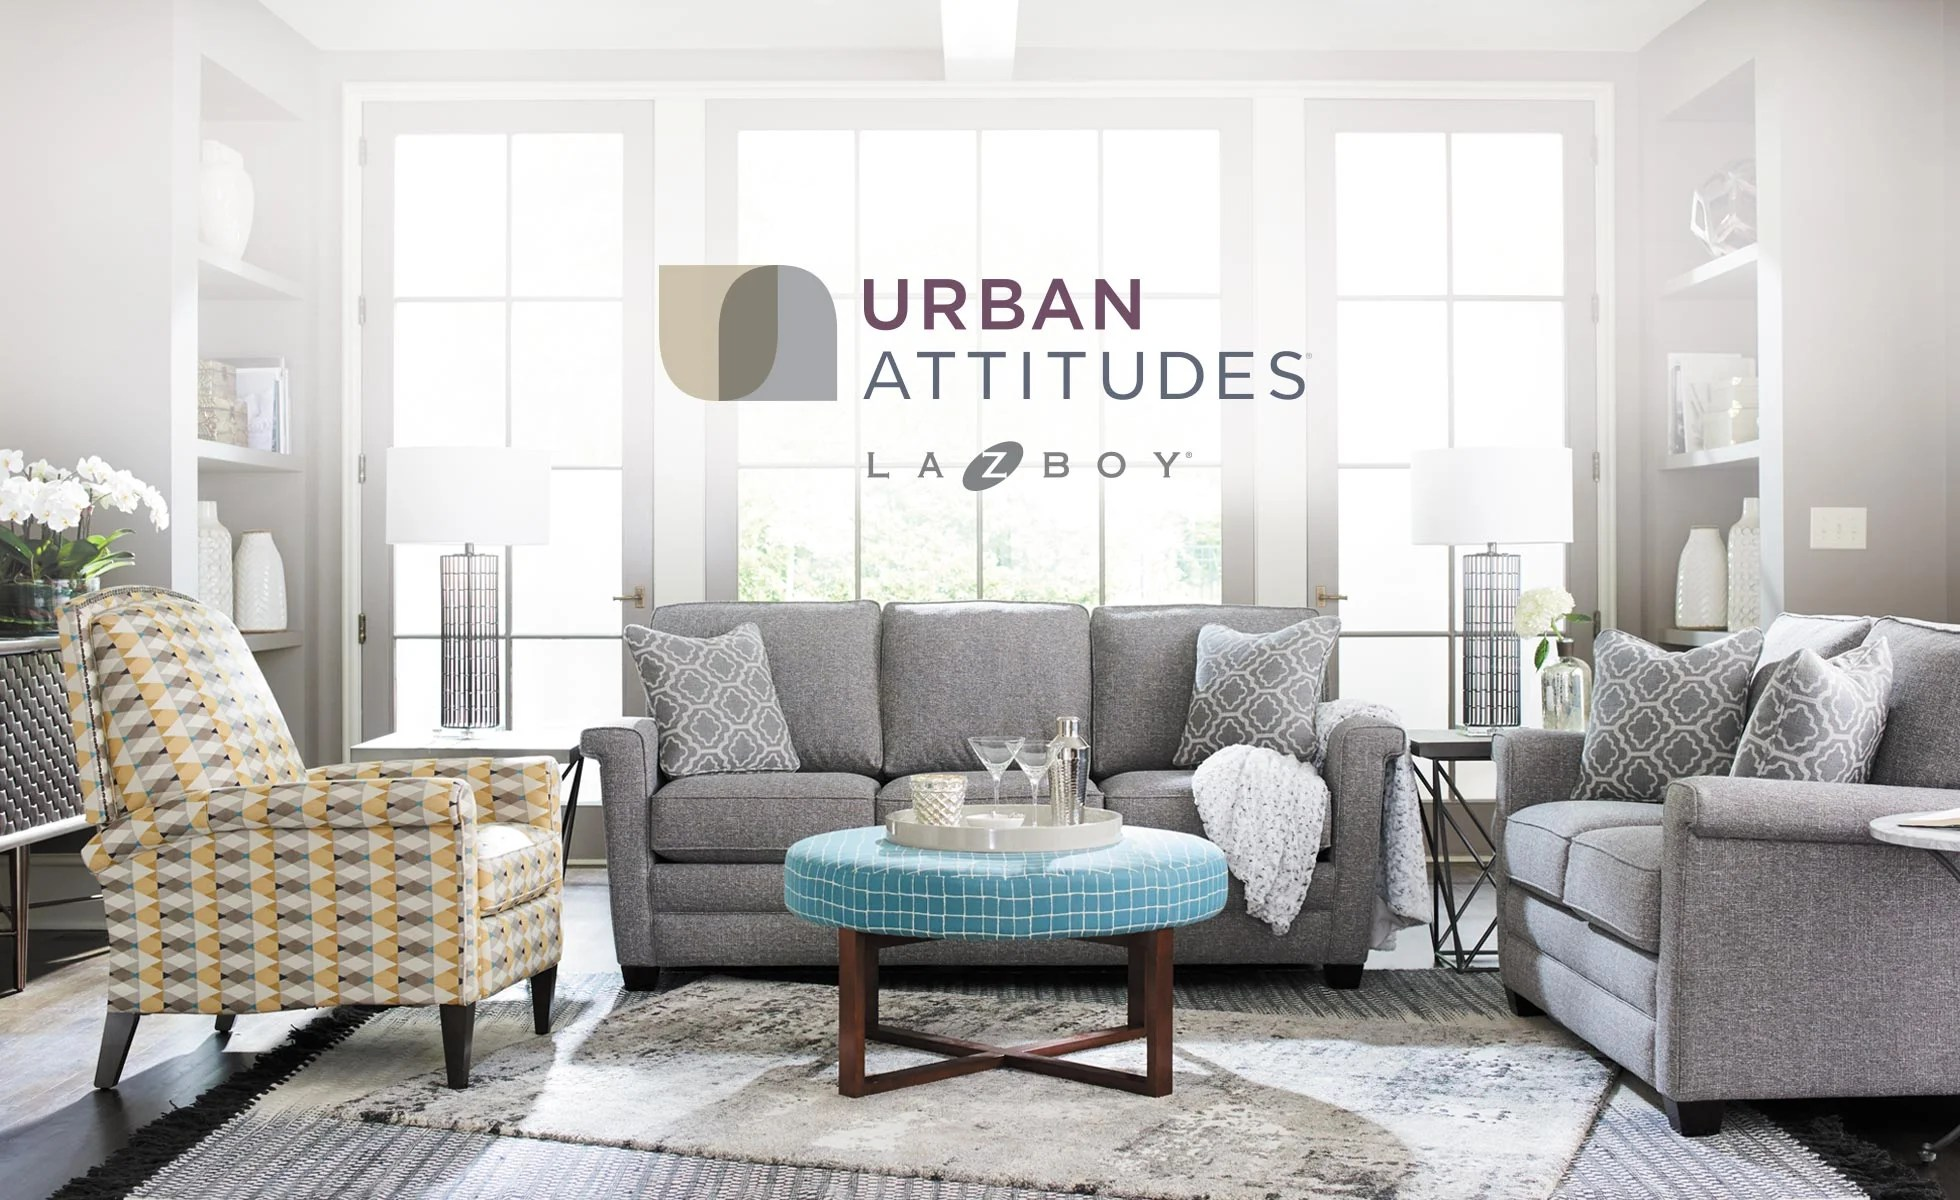 Sofa Dreams Outlet Urban Attitudes Room Design Made Simple La Z Boy